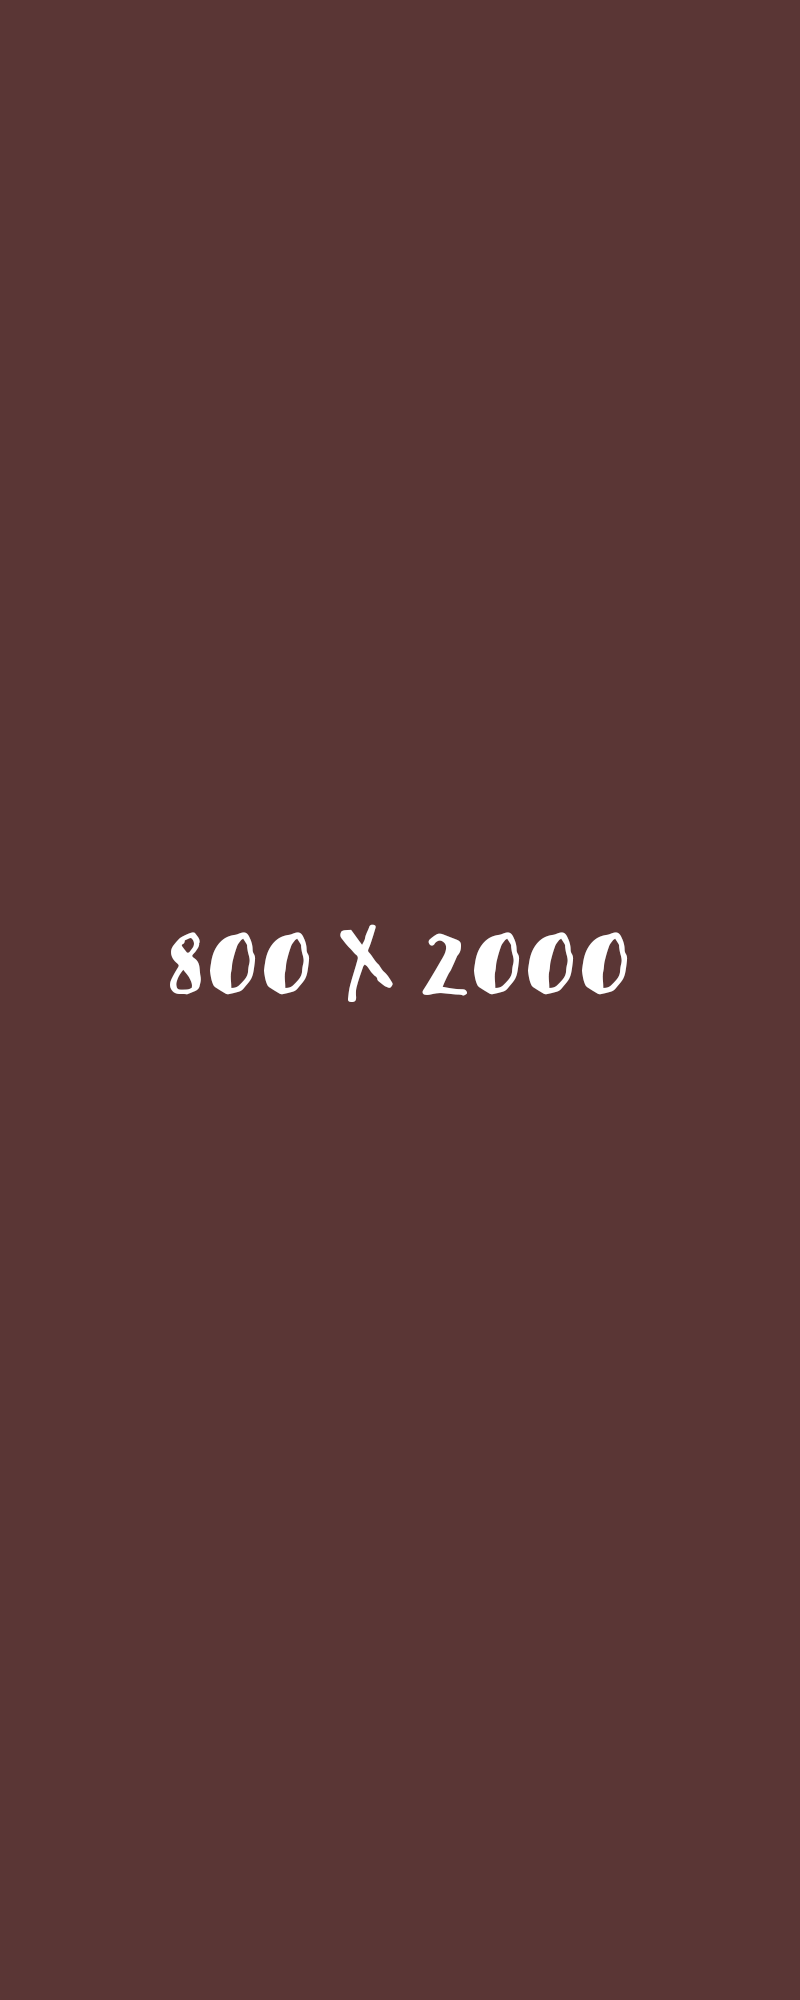 test 2000 tall x 800.png